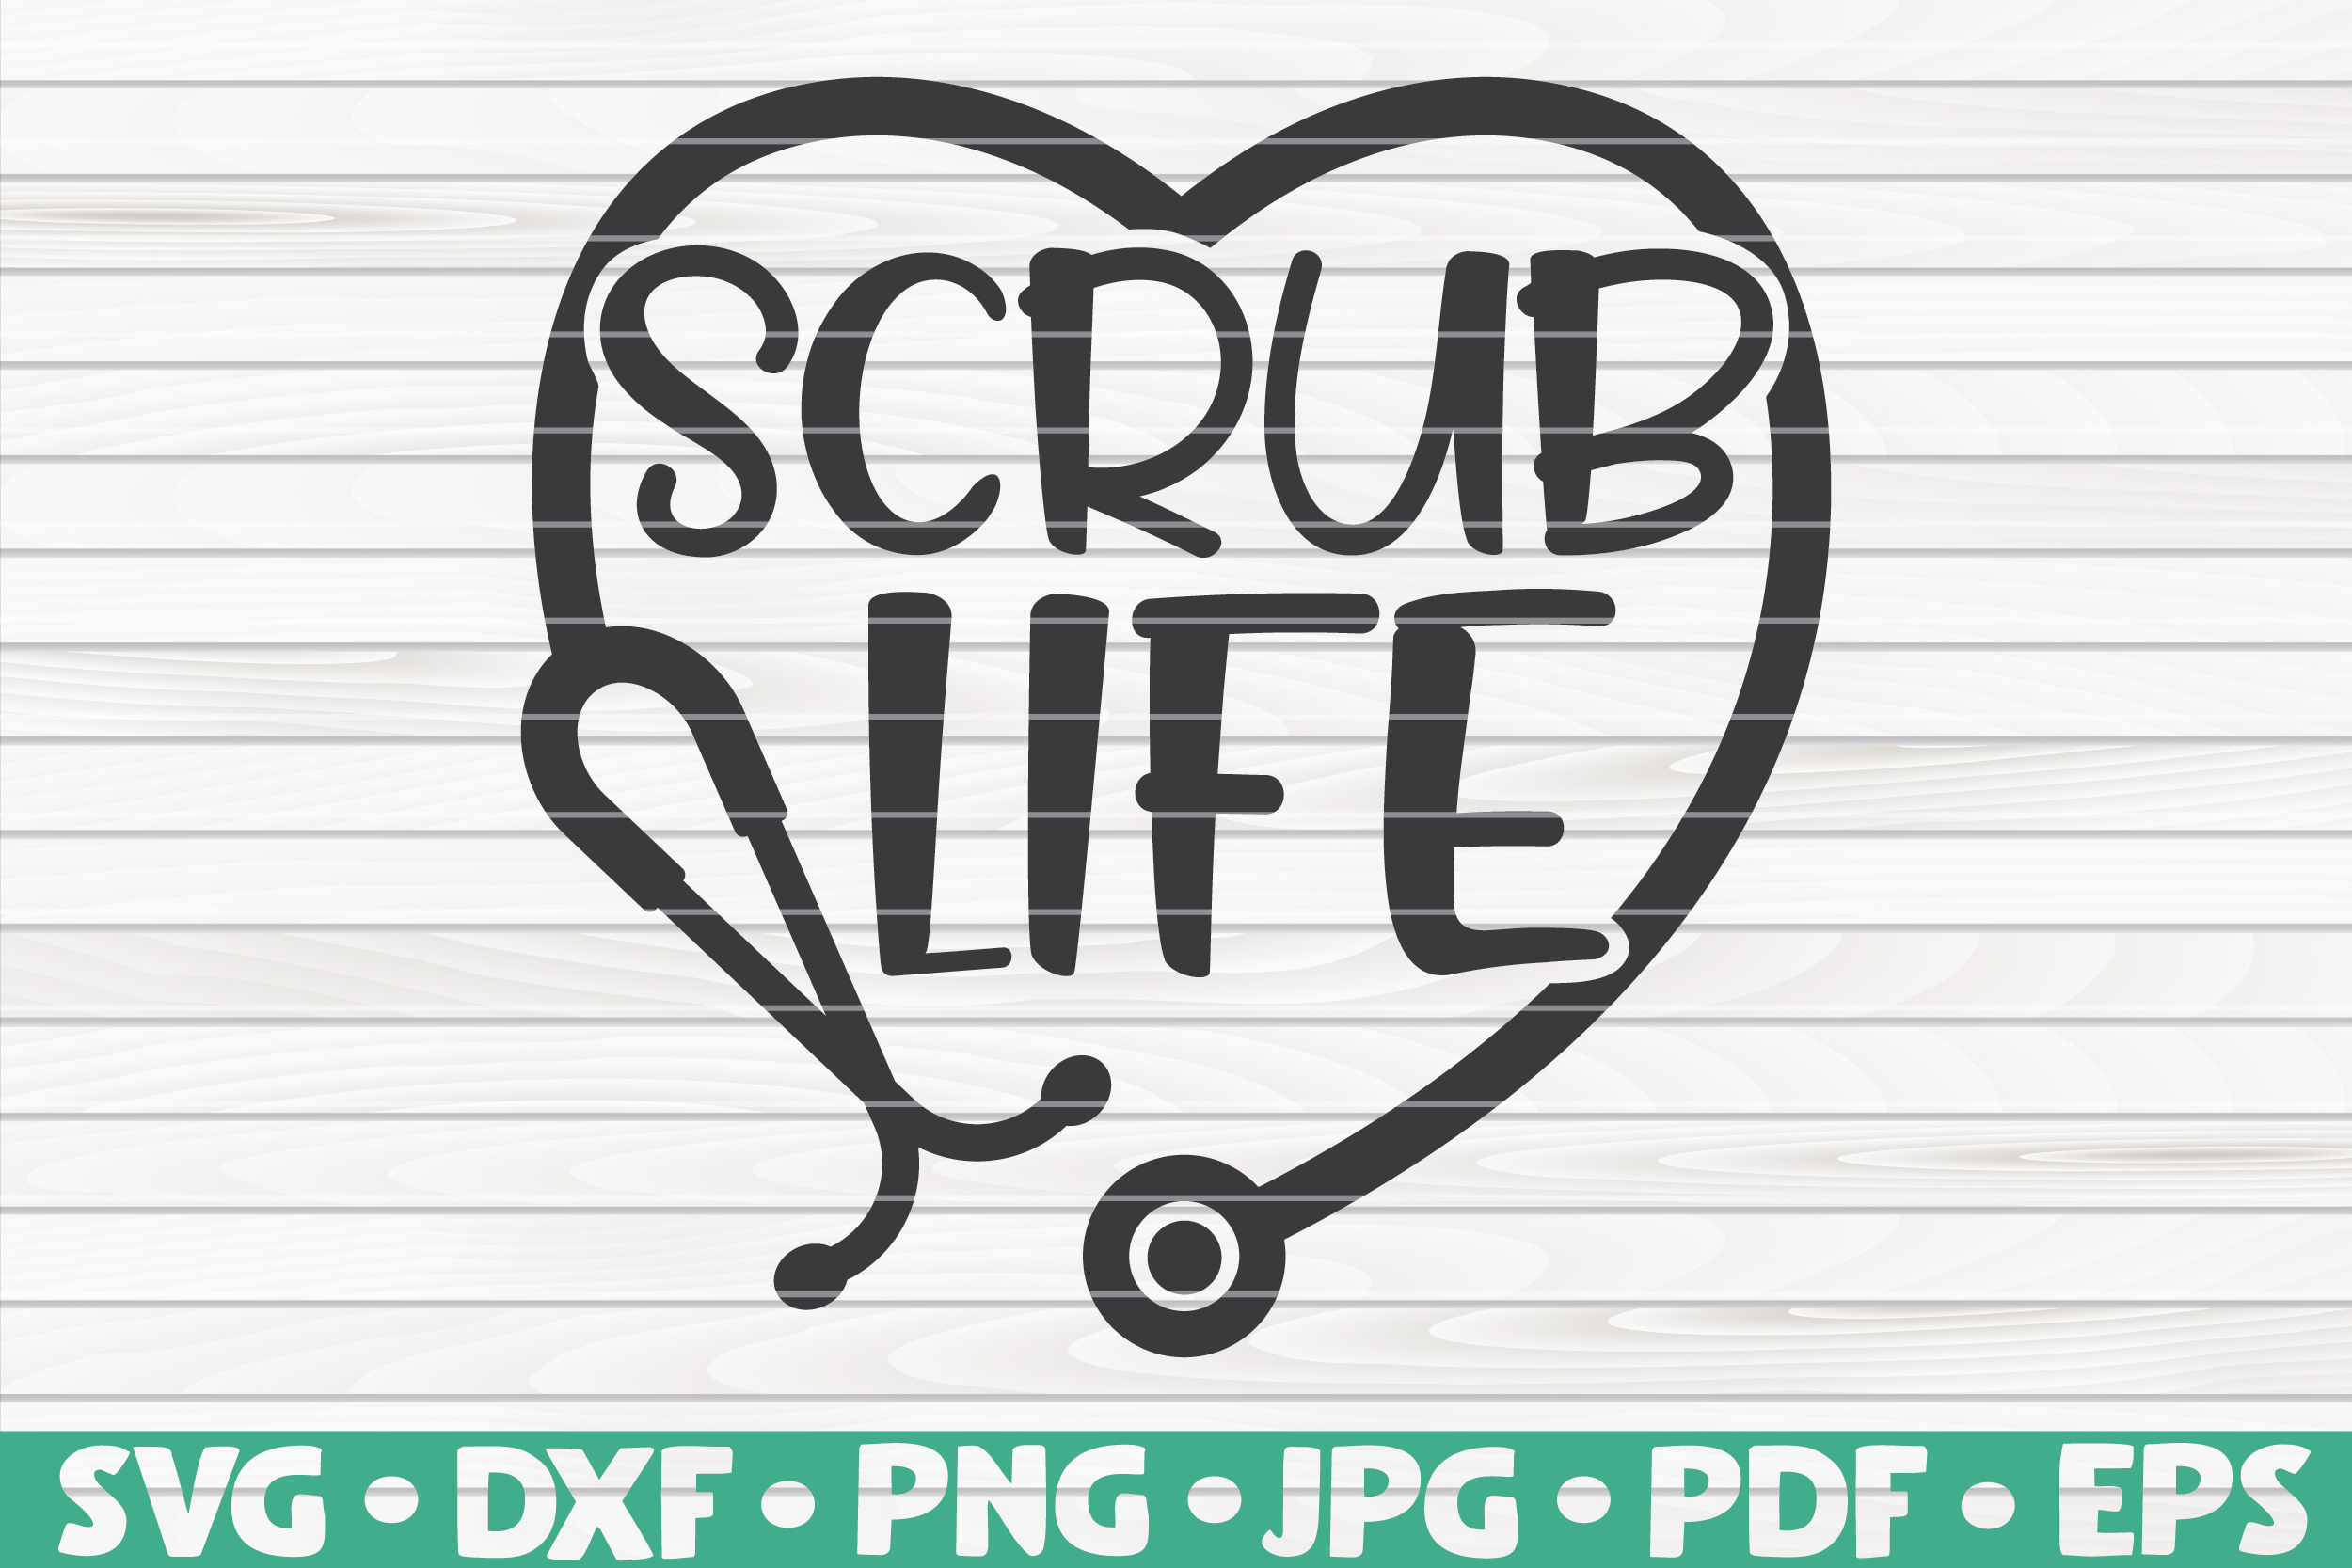 Download Free Scrub Life Graphic By Mihaibadea95 Creative Fabrica for Cricut Explore, Silhouette and other cutting machines.